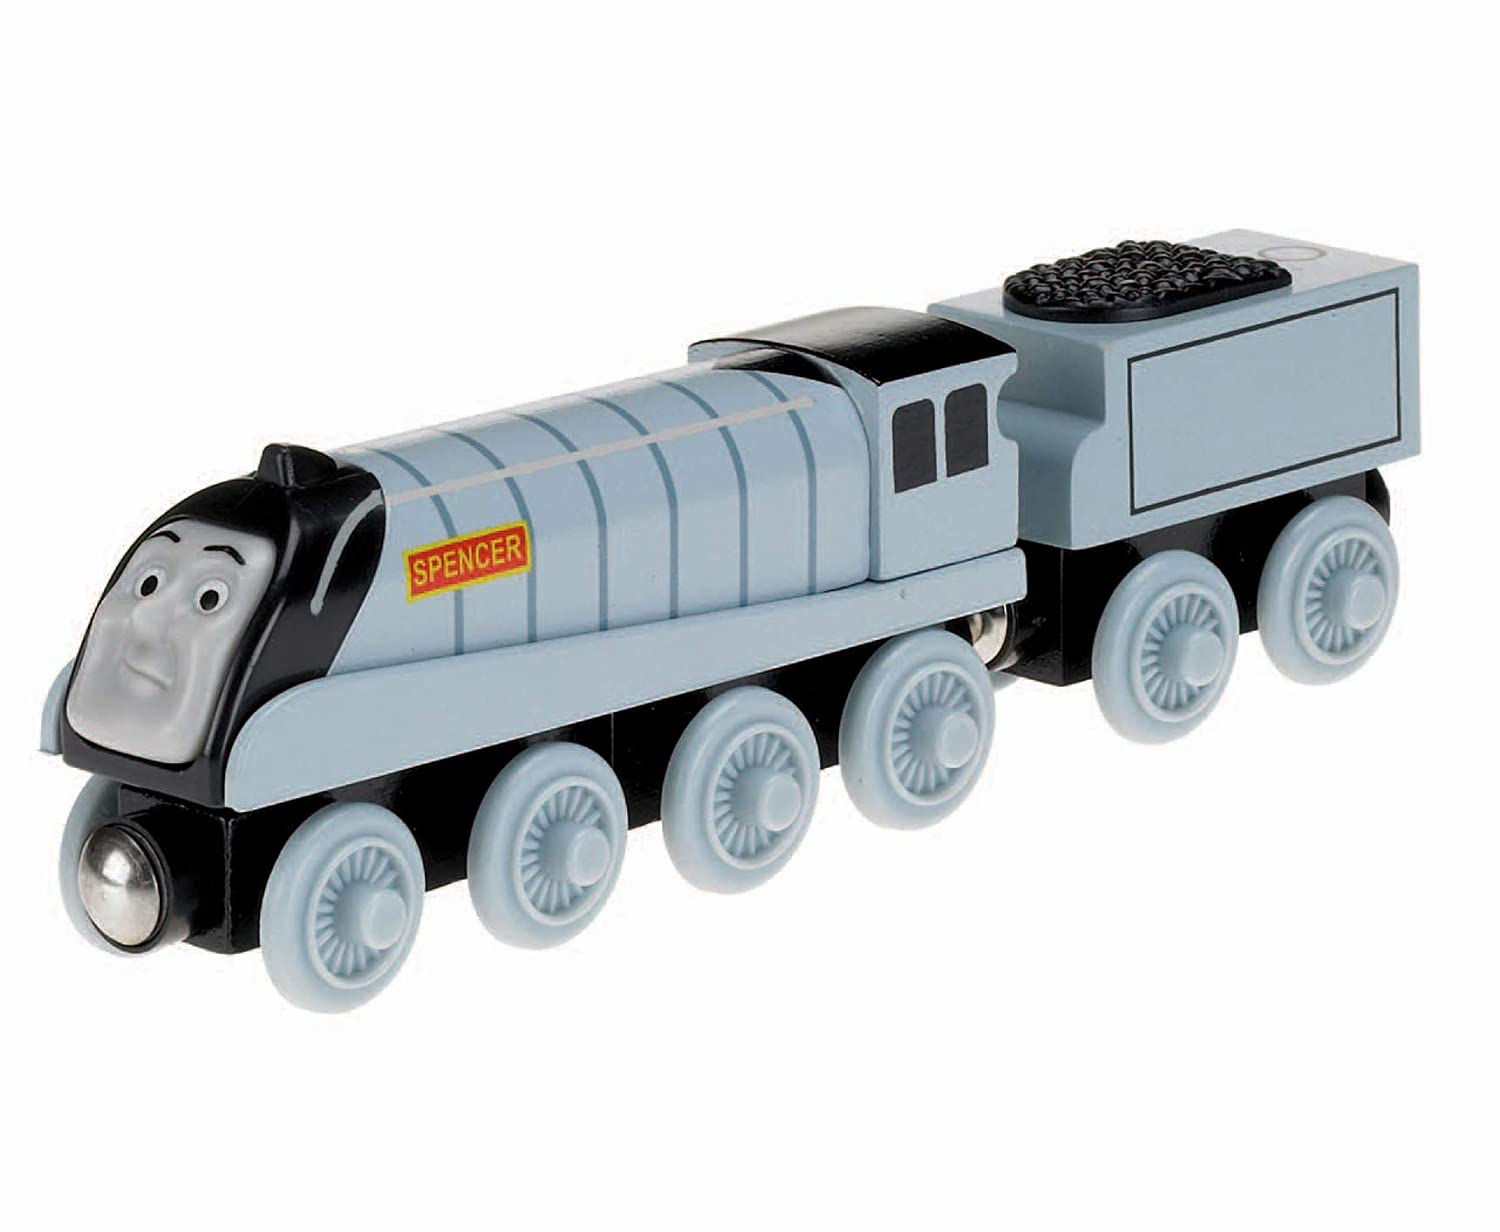 Fisher-Price Thomas the Train Wooden Railway Talking Spencer by Fisher-Price